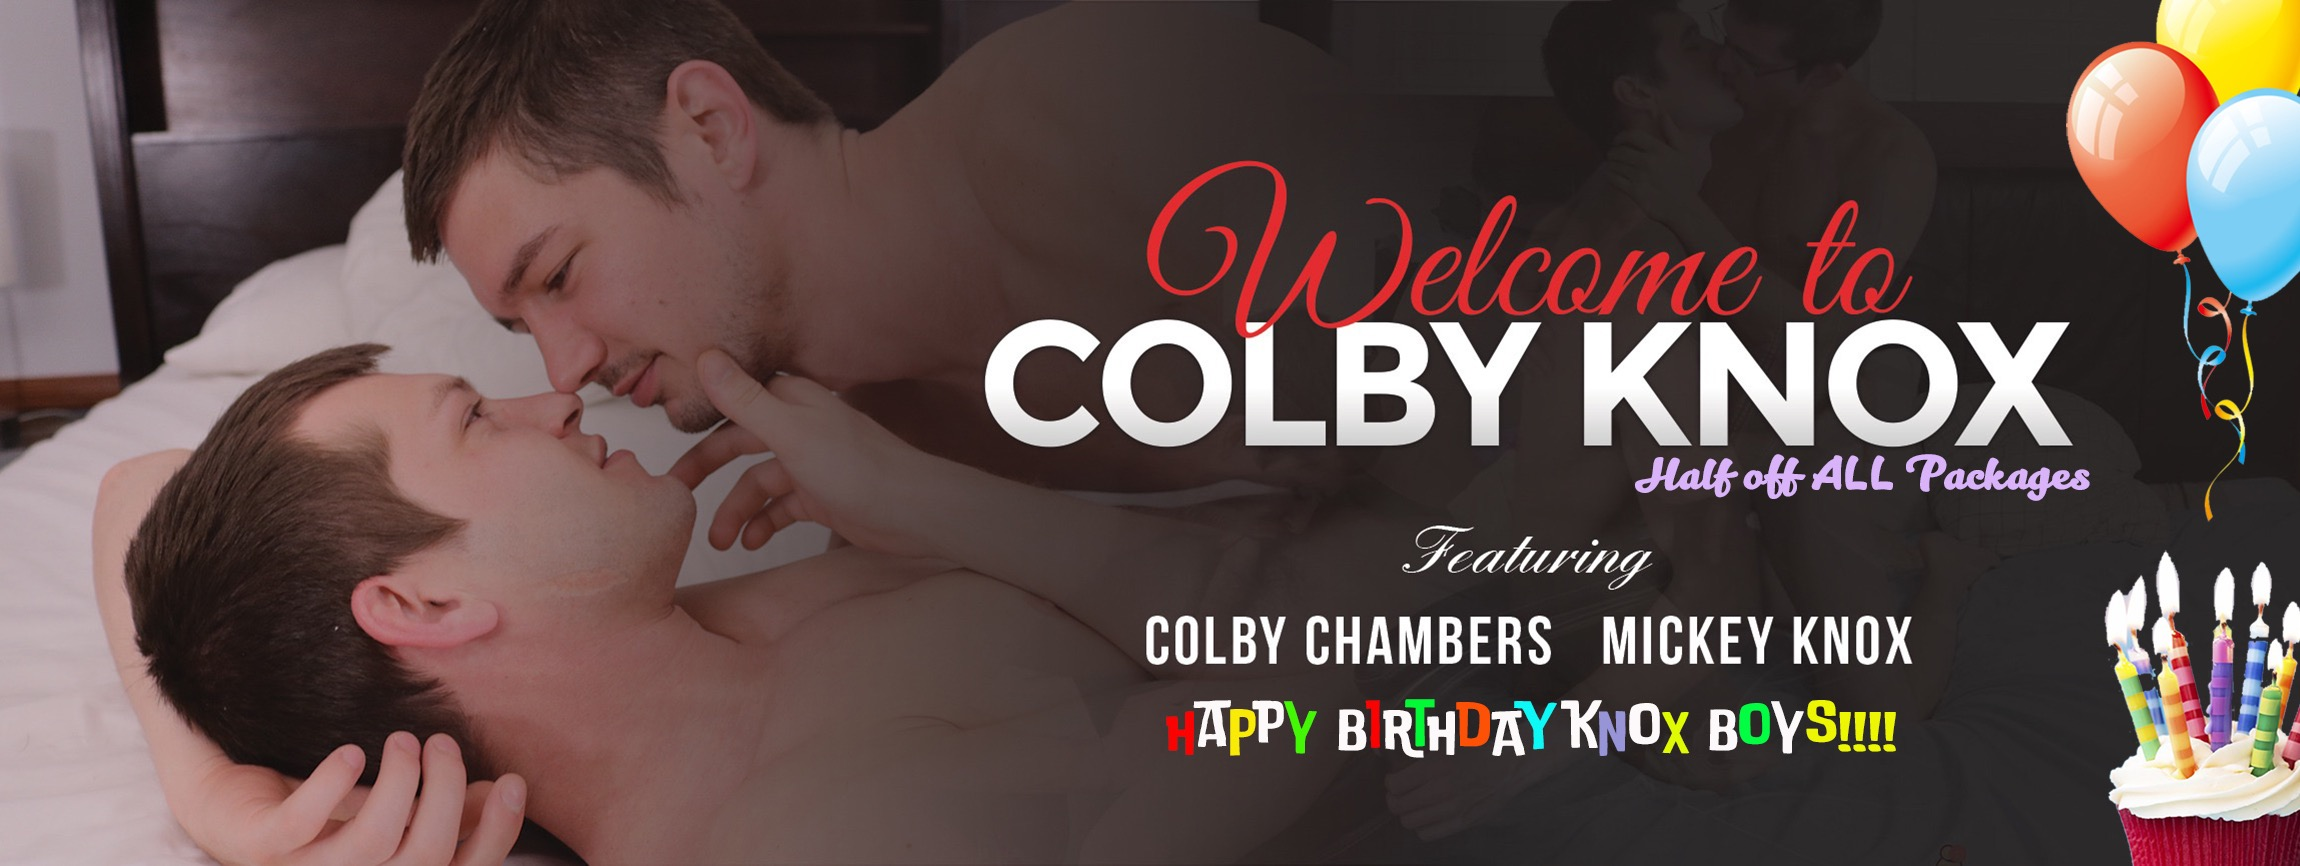 Welcome to Colby Knox